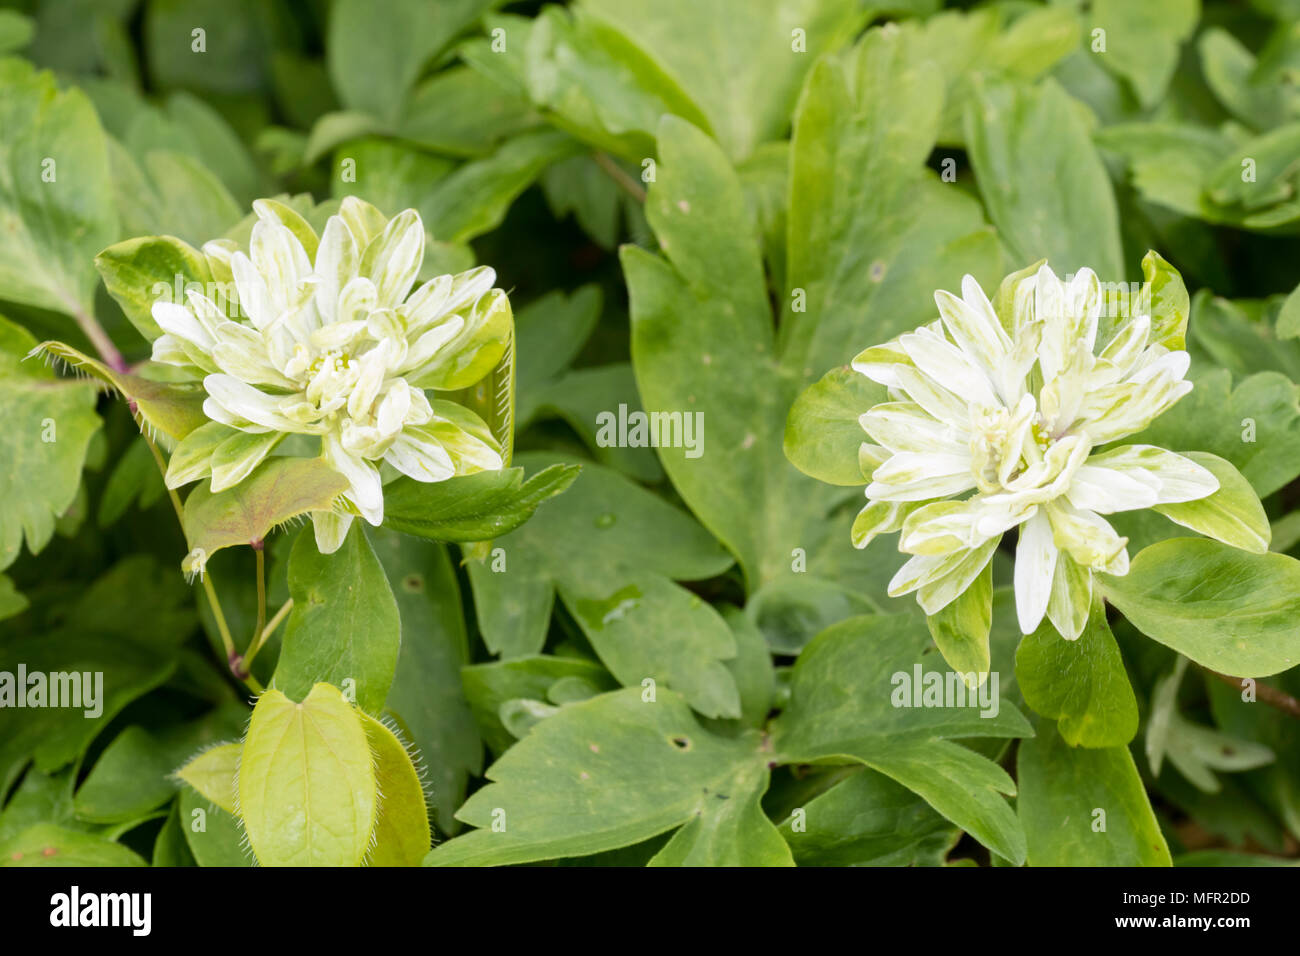 Double white and green flower of the unusual variety of the spring flowering wood anemone, Anemone nemorosa 'Tage Lundell' - Stock Image